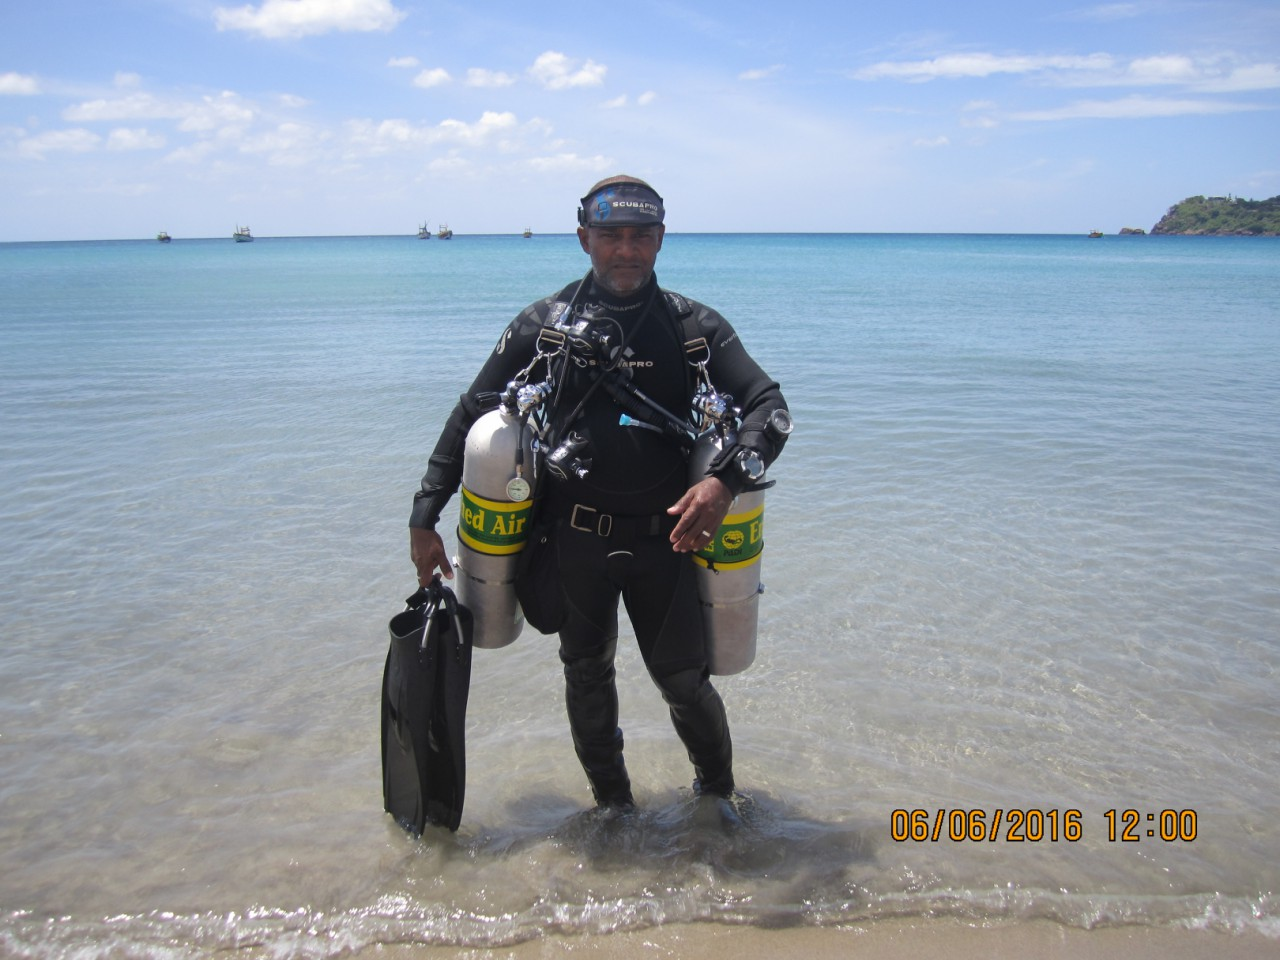 Come and learn to dive sidemount with us at Taprobane Divers!